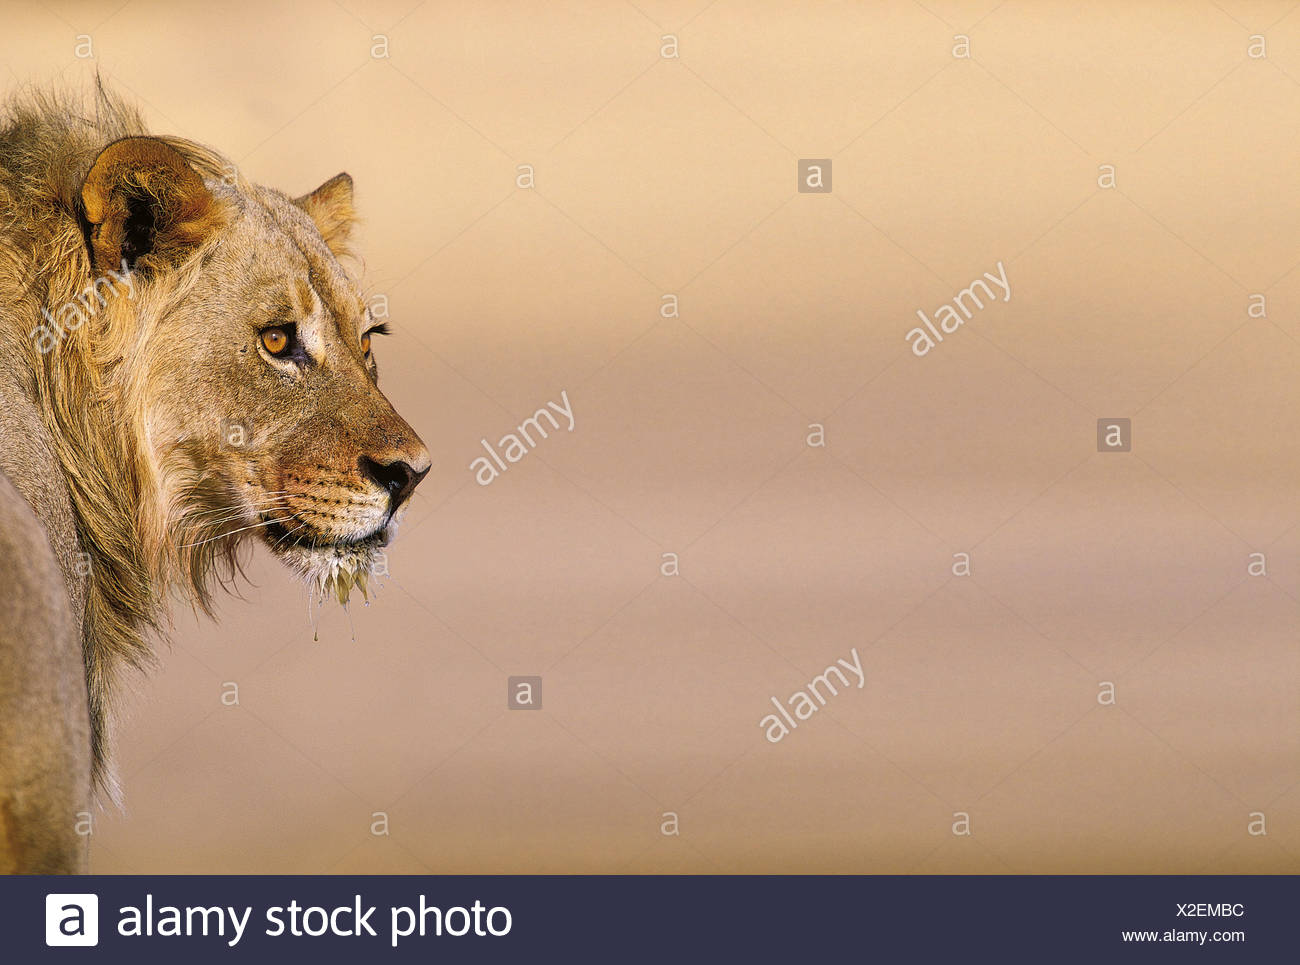 Young Male Lion (Panthera leo) on the Lookout - Stock Image